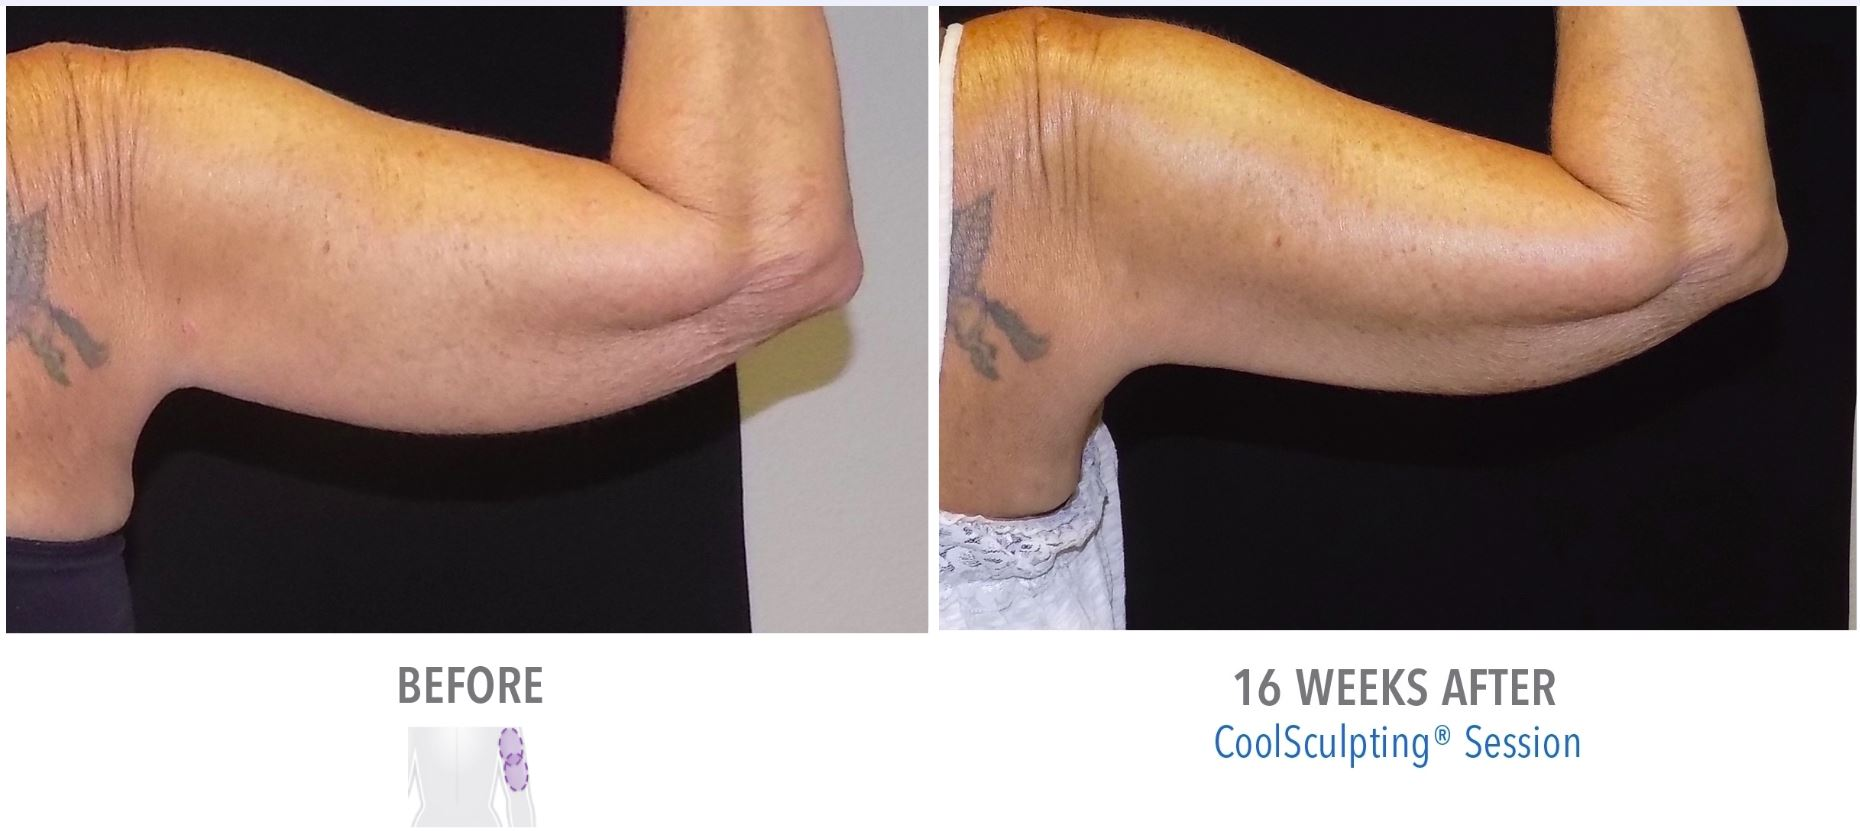 Before and After Result - CoolSculpting Arms